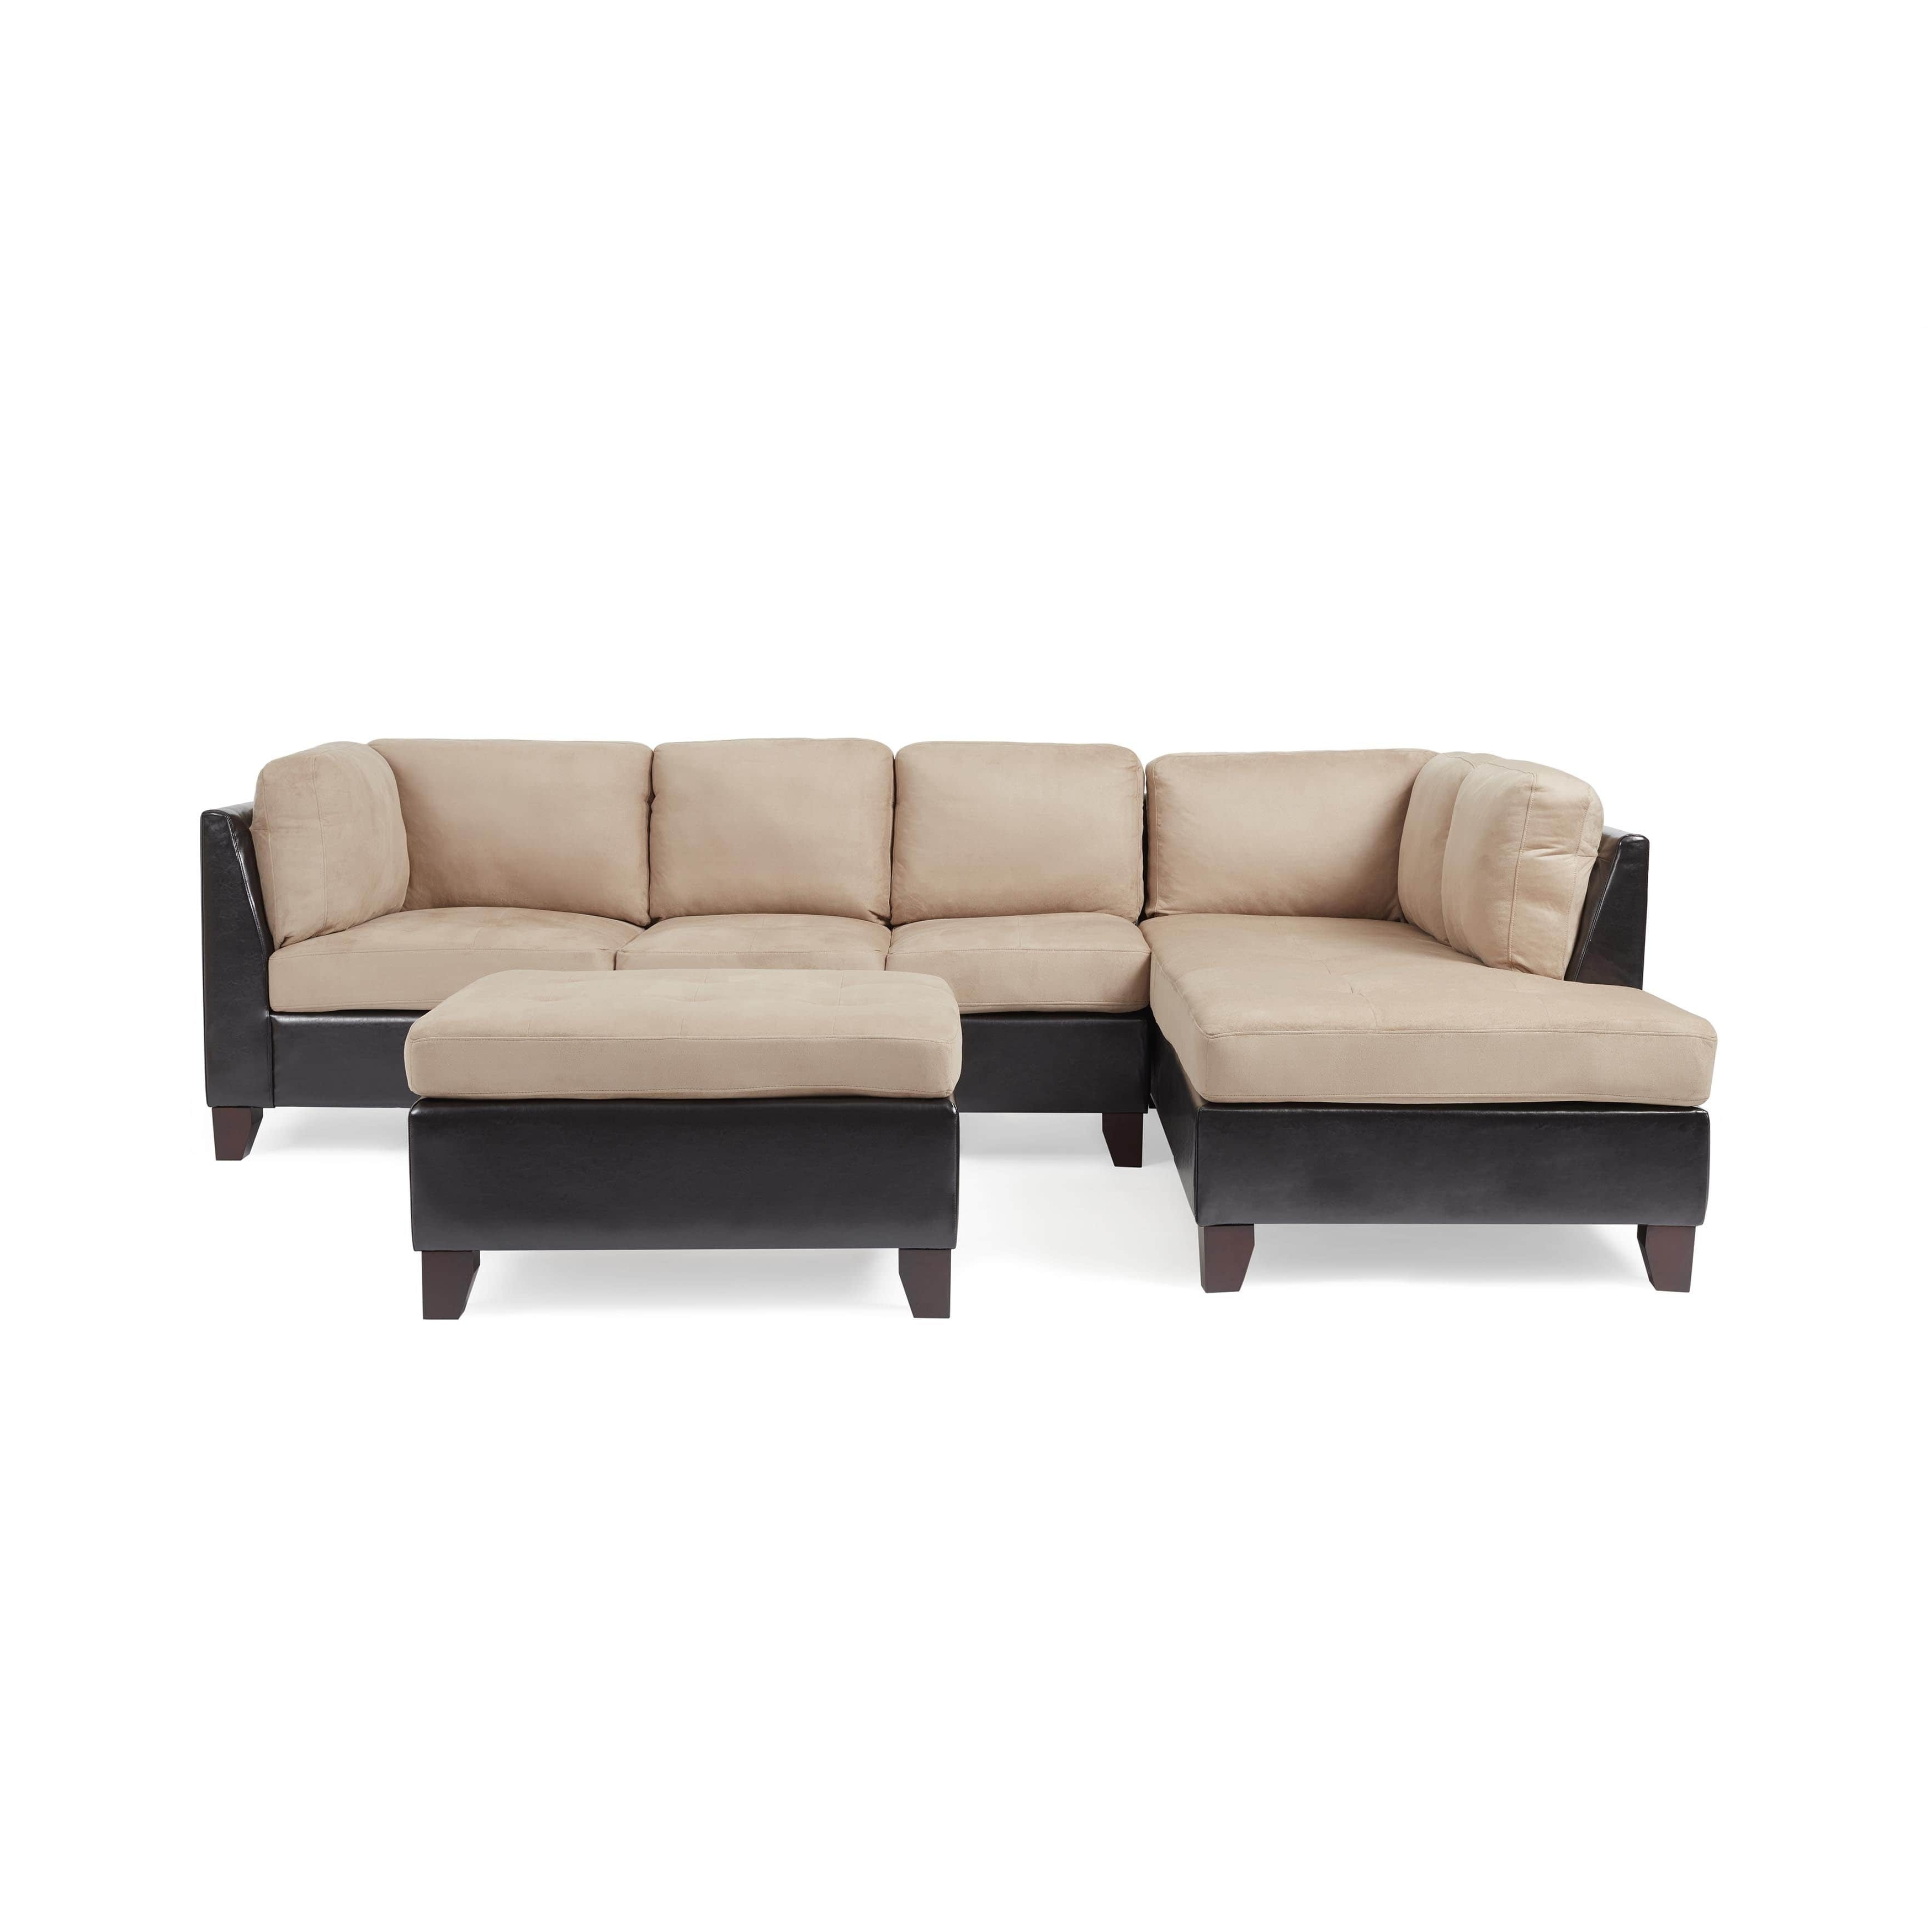 Abbyson Charlotte Beige Sectional Sofa And Ottoman – Free Shipping Within Well Known Charlotte Sectional Sofas (View 14 of 20)